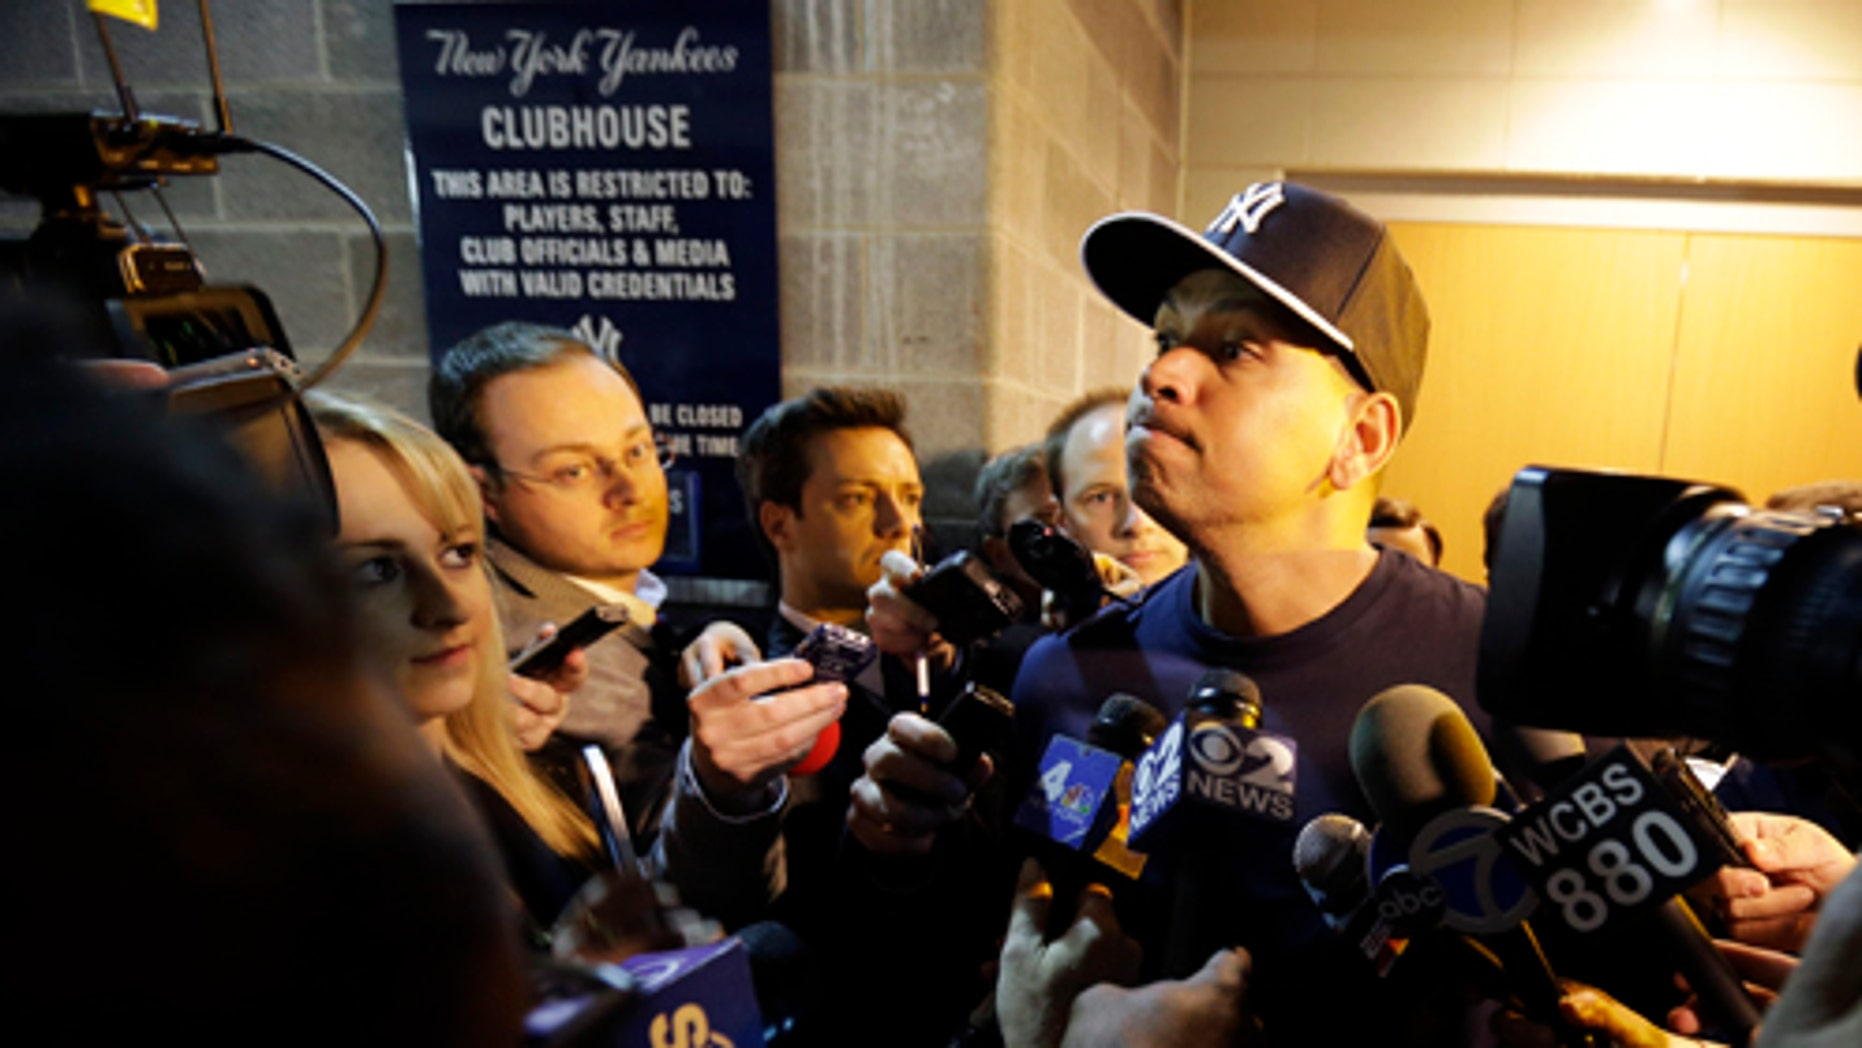 New York Yankees' Alex Rodriguez listens to a question form the media before an opening day a baseball game against the Boston Red Sox, Monday, April 1, 2013, in New York. (AP Photo/Matt Slocum)